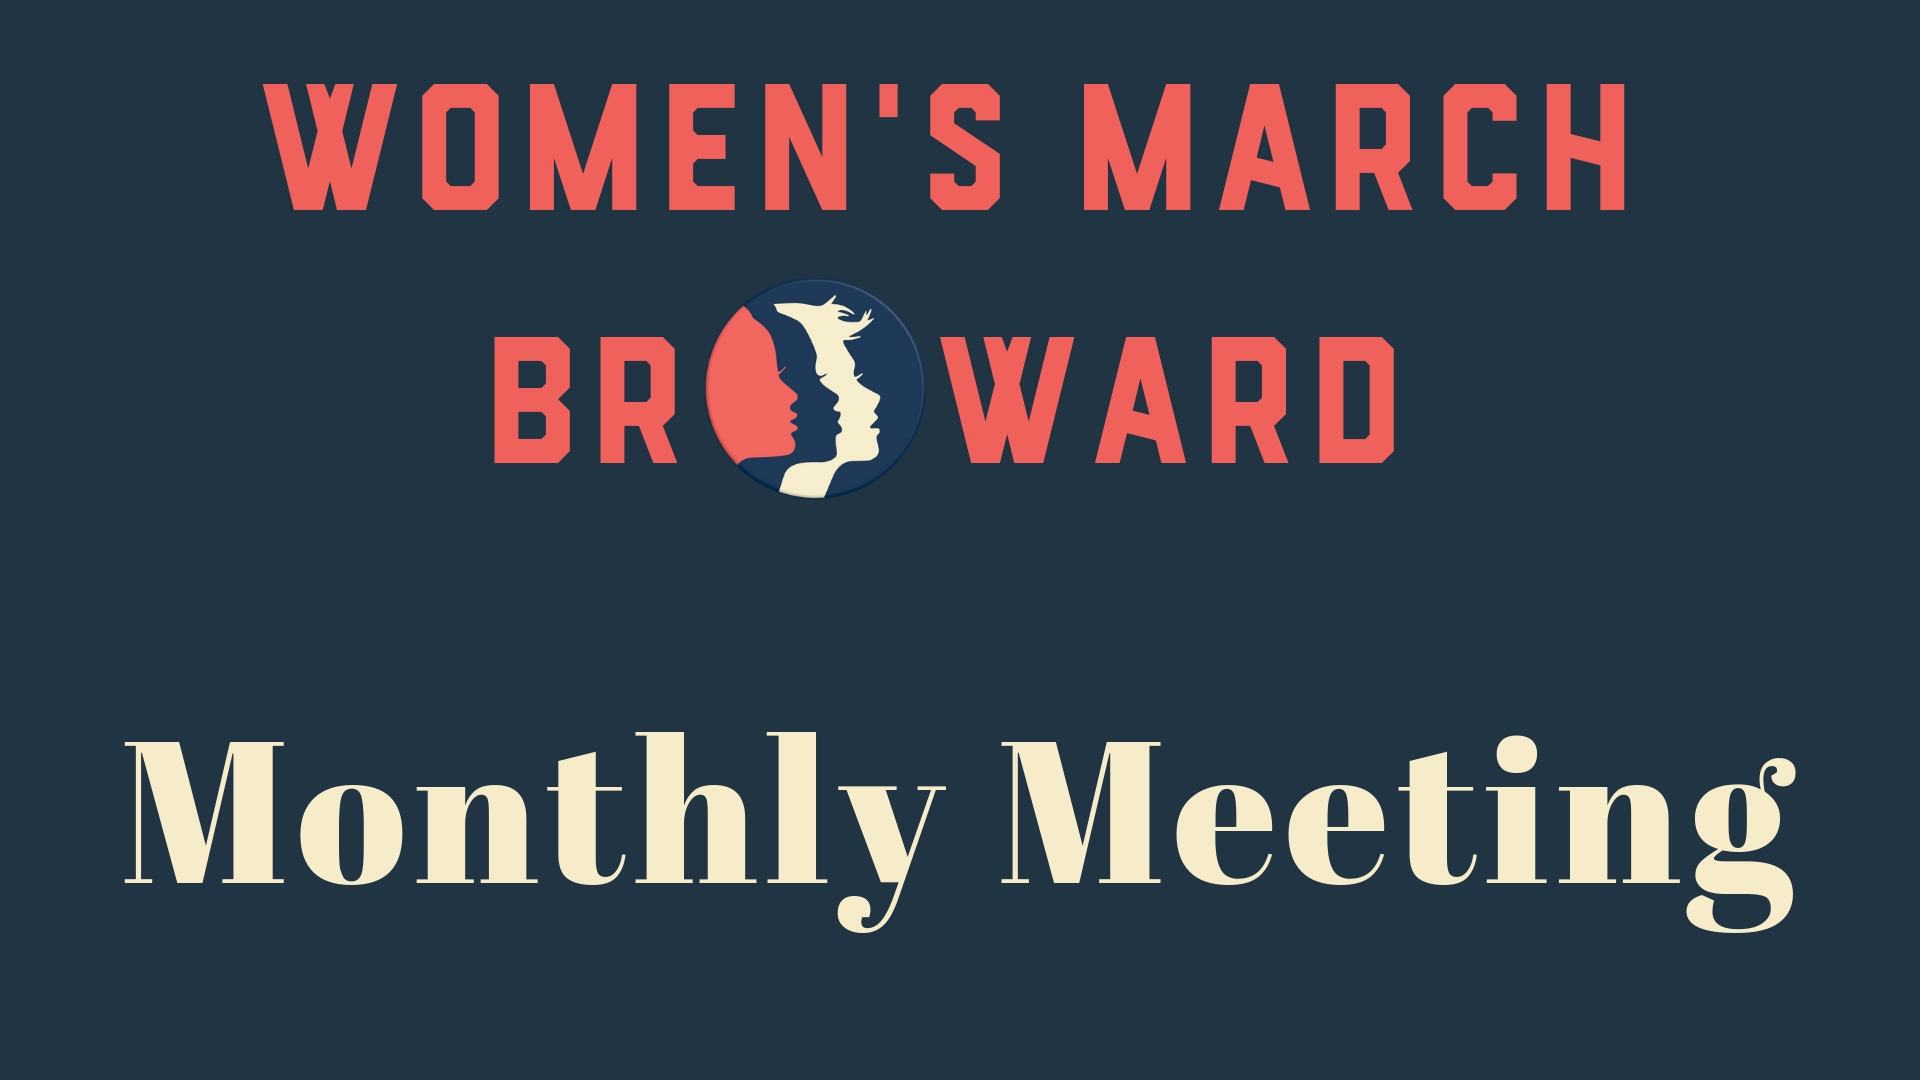 12-13-18: Monthly Meeting - Please join Women's March Broward at our Membership Meeting. Meeting details to follow.Please RSVP as soon as you can so we can ask the venue to have the appropriate amount of staff working the event. :)We look forward to seeing you on December 13th!